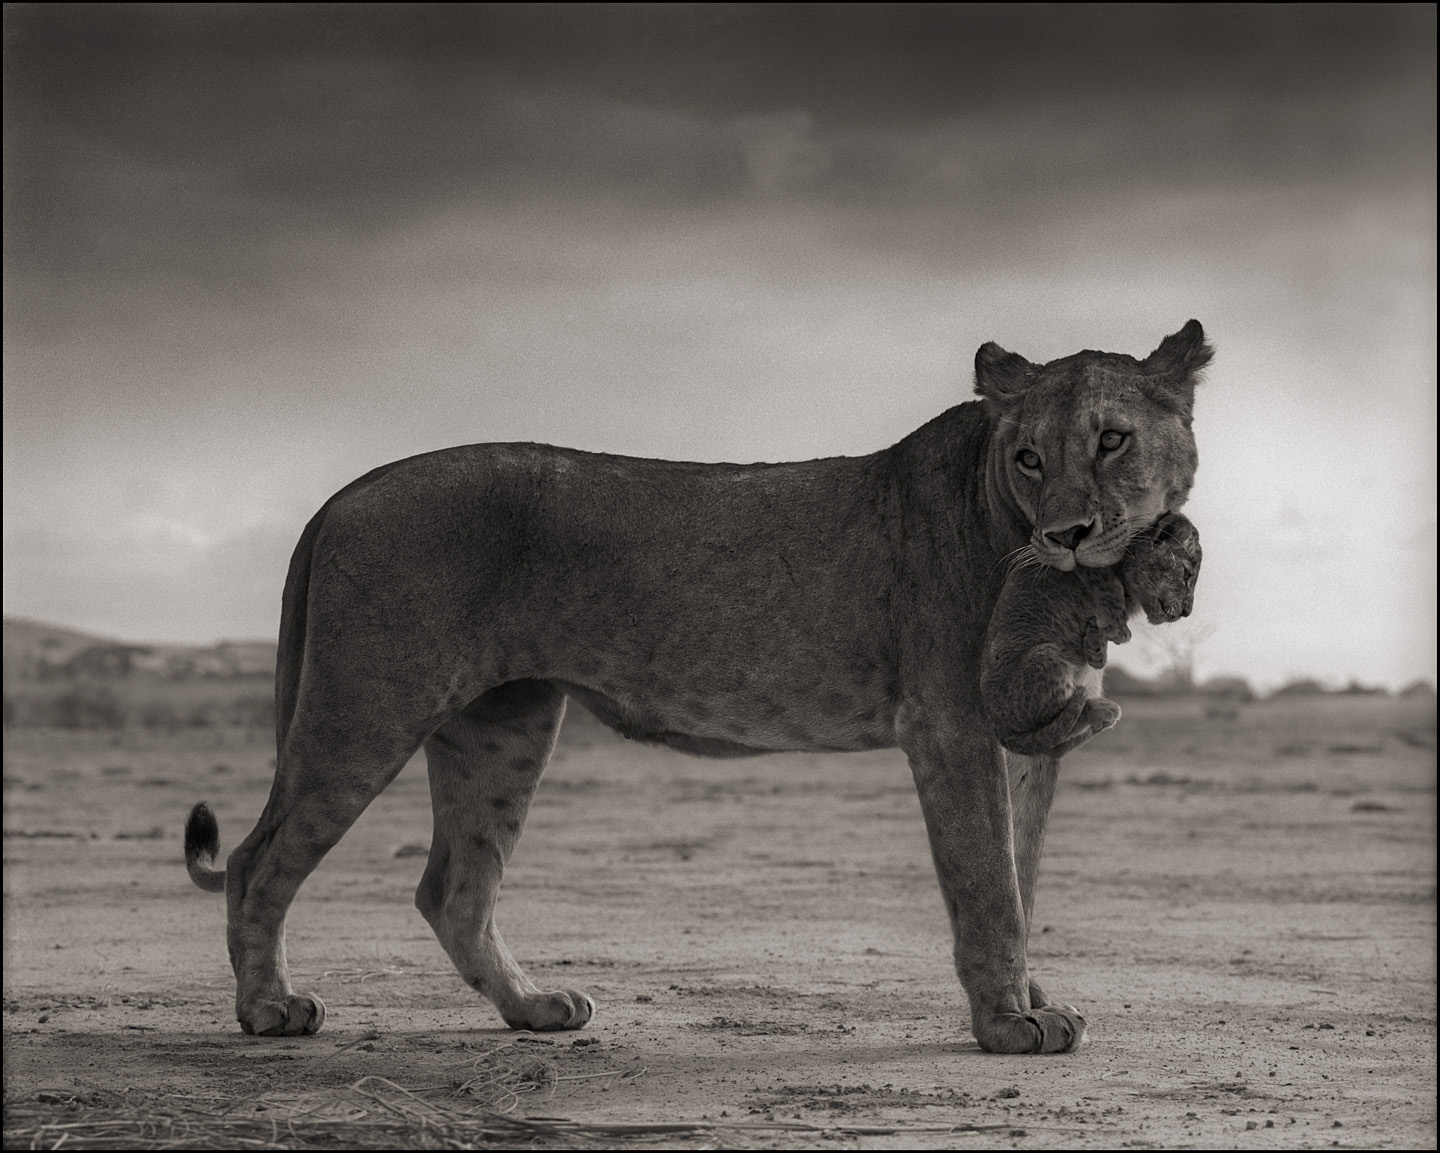 Lioness Holding Cub in Mouth, Amboseli, 2012